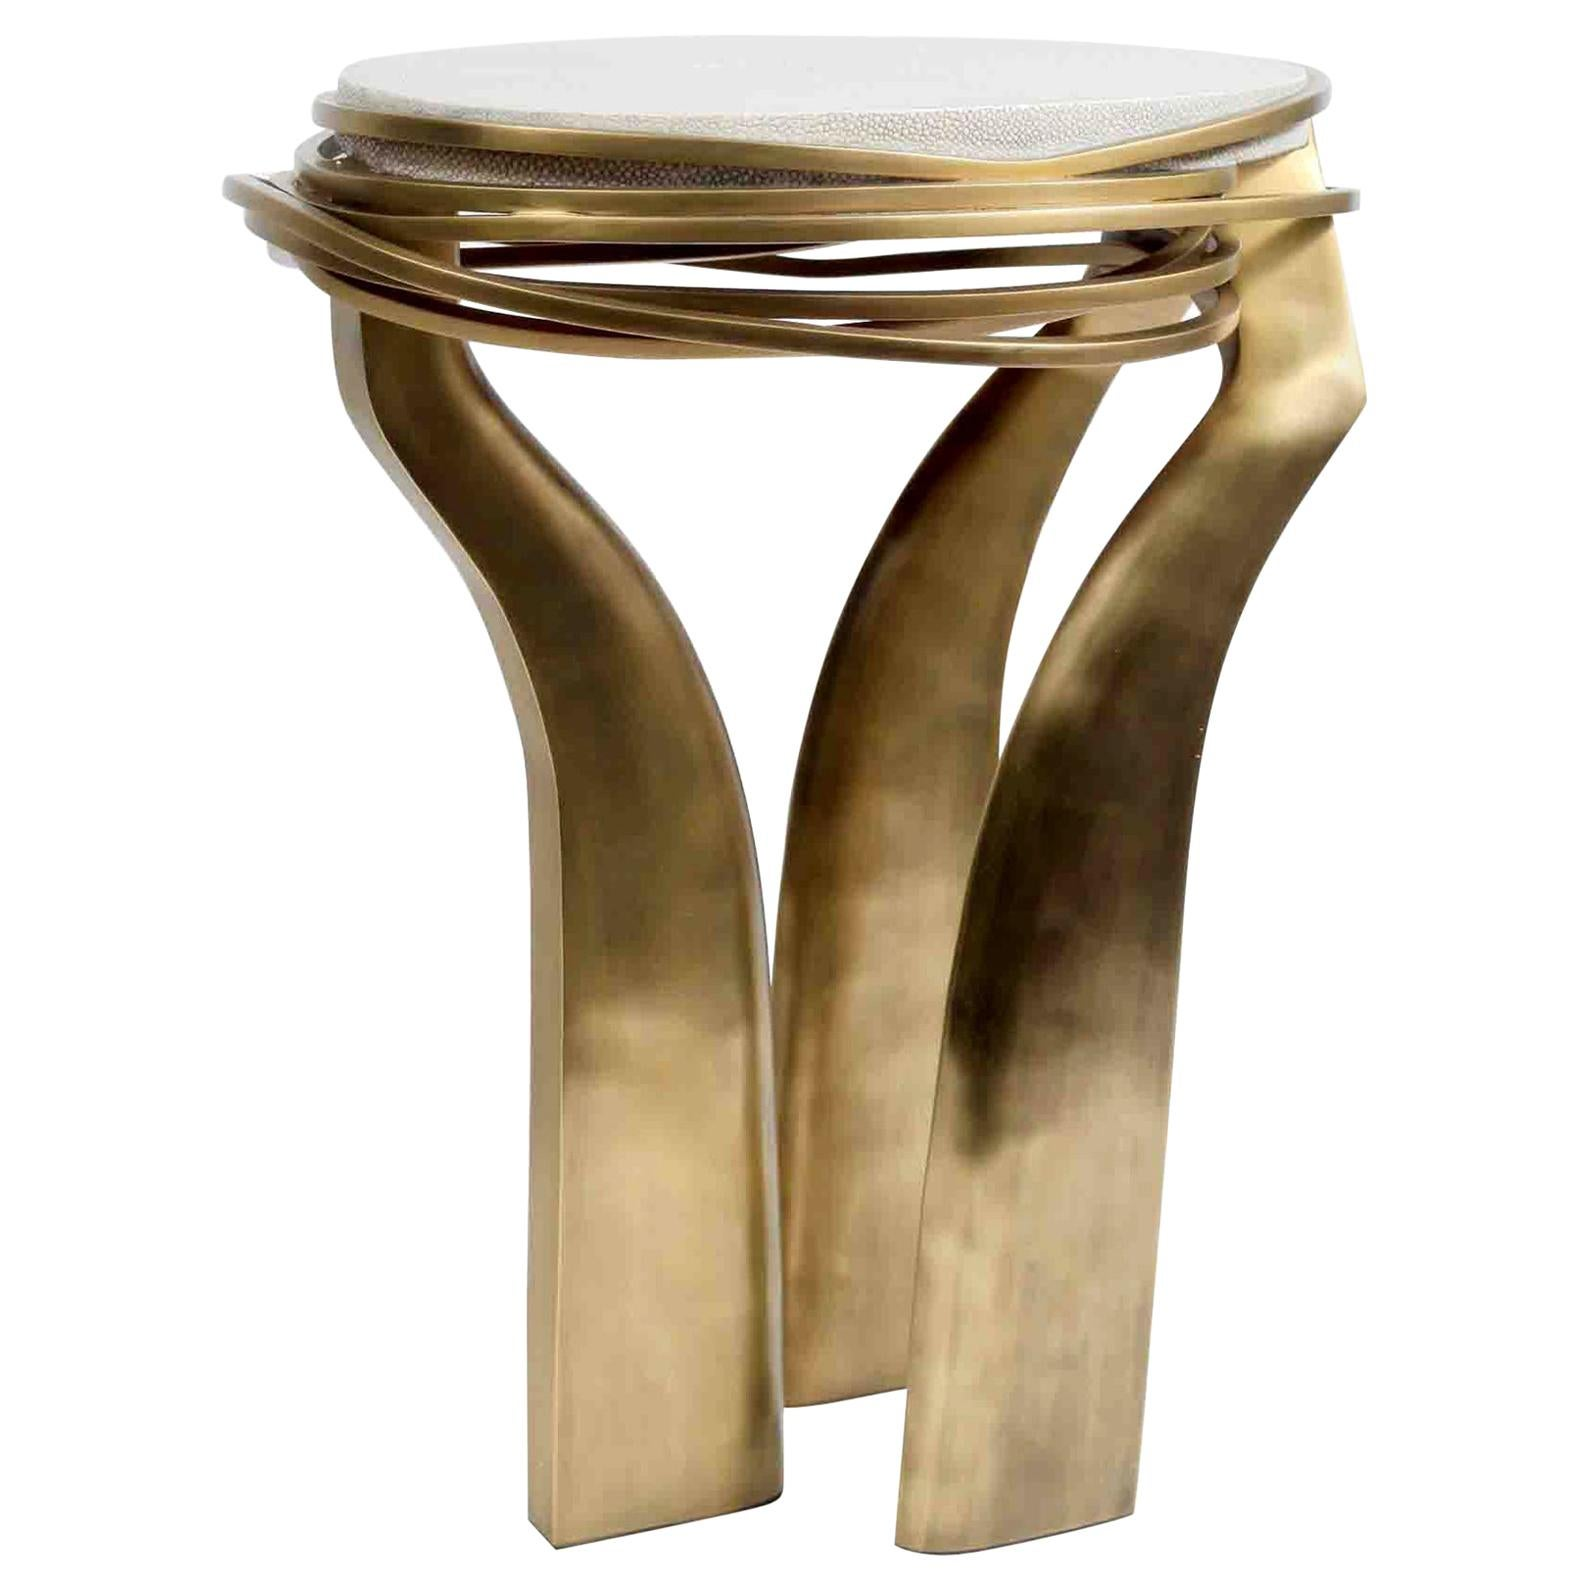 Shagreen Side Table with Sculptural Bronze-Patina Brass Details by Kifu Paris